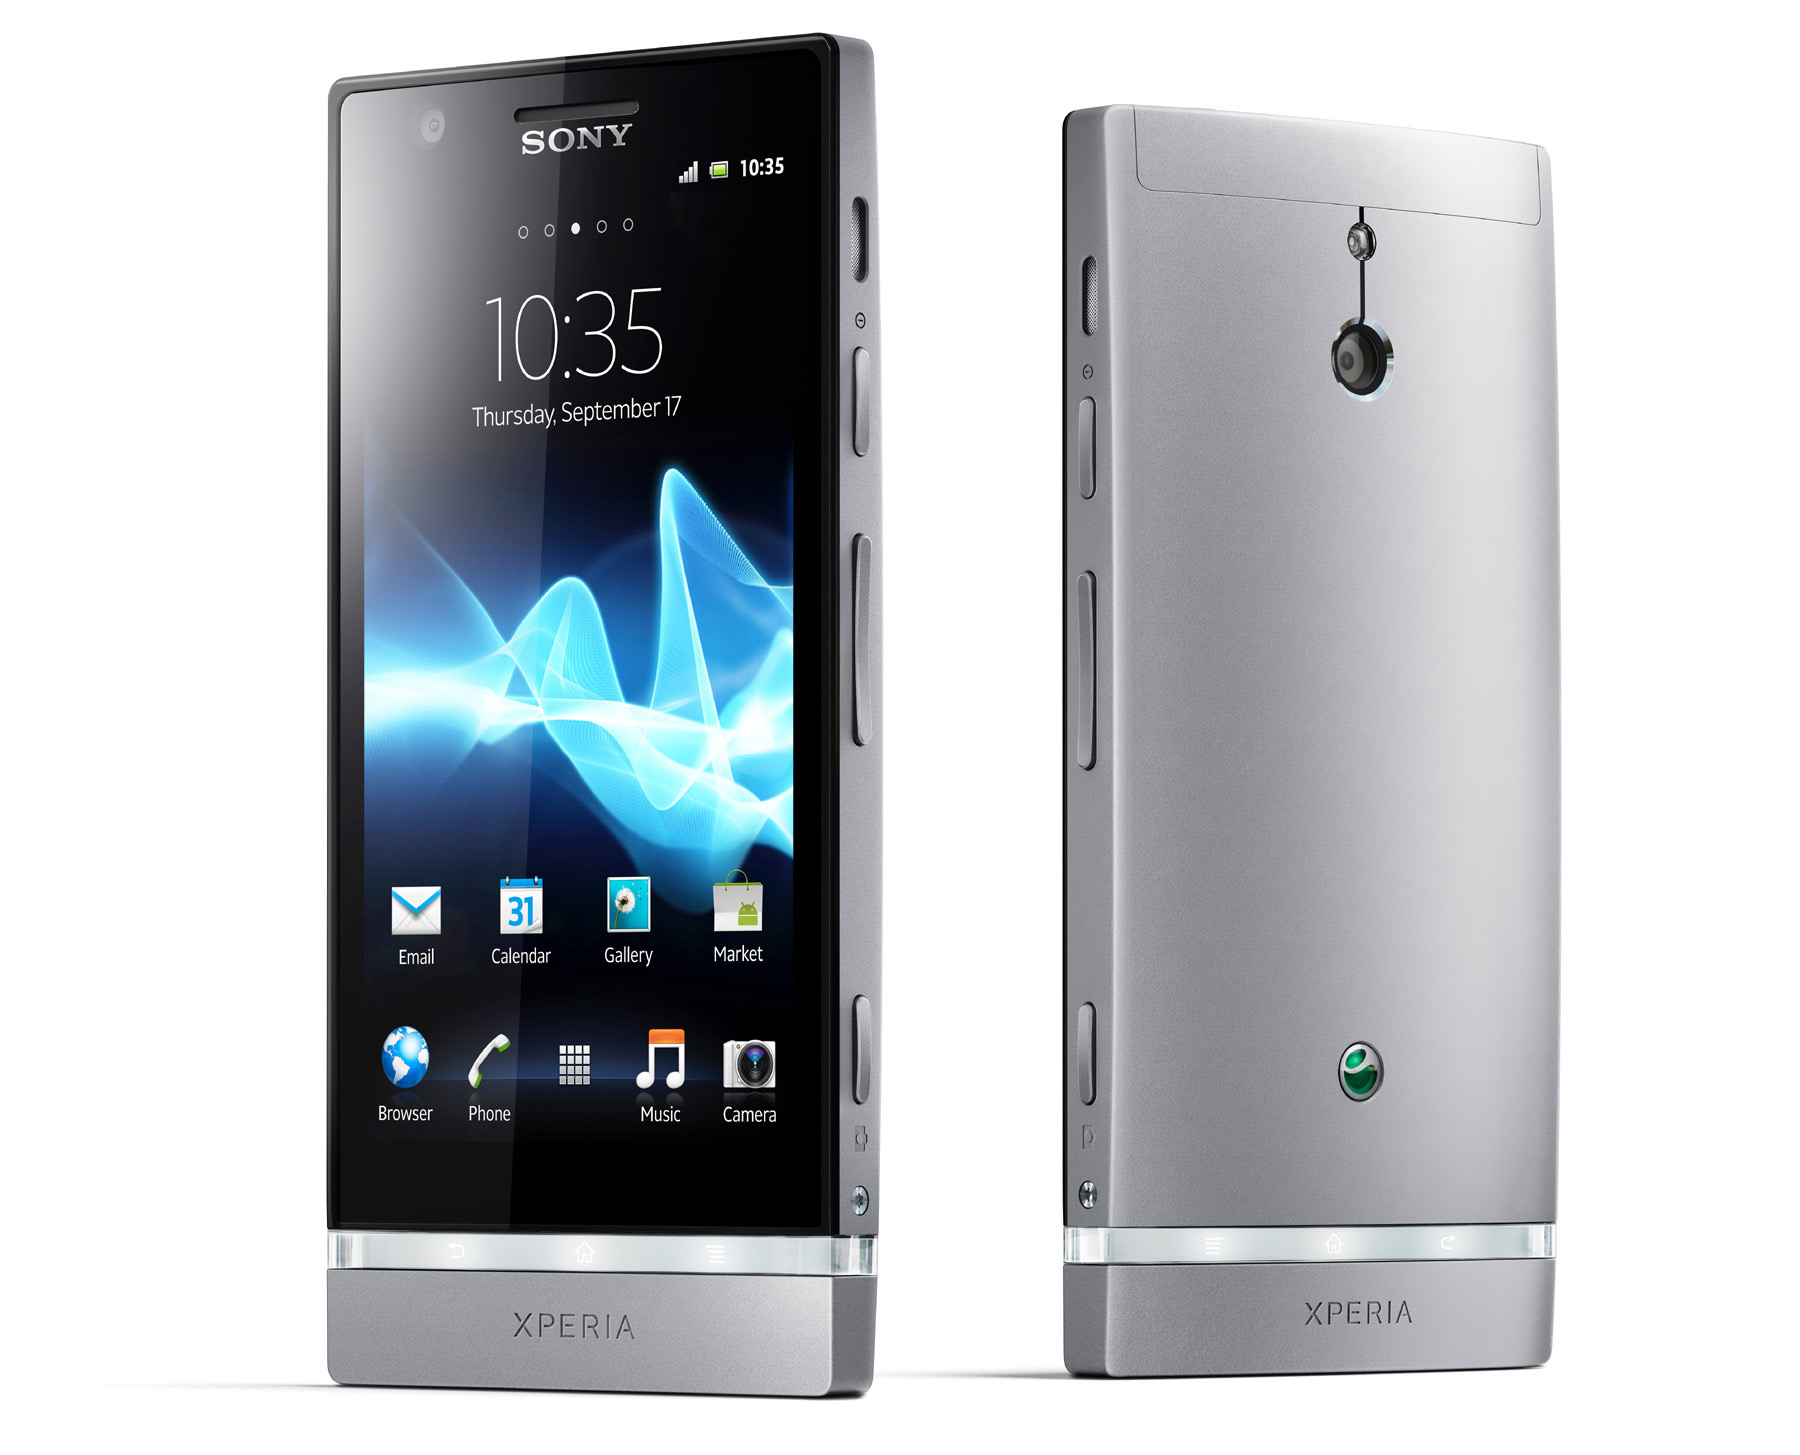 Sony Xperia P Libre Sony Xperia P Specs And Price Phonegg